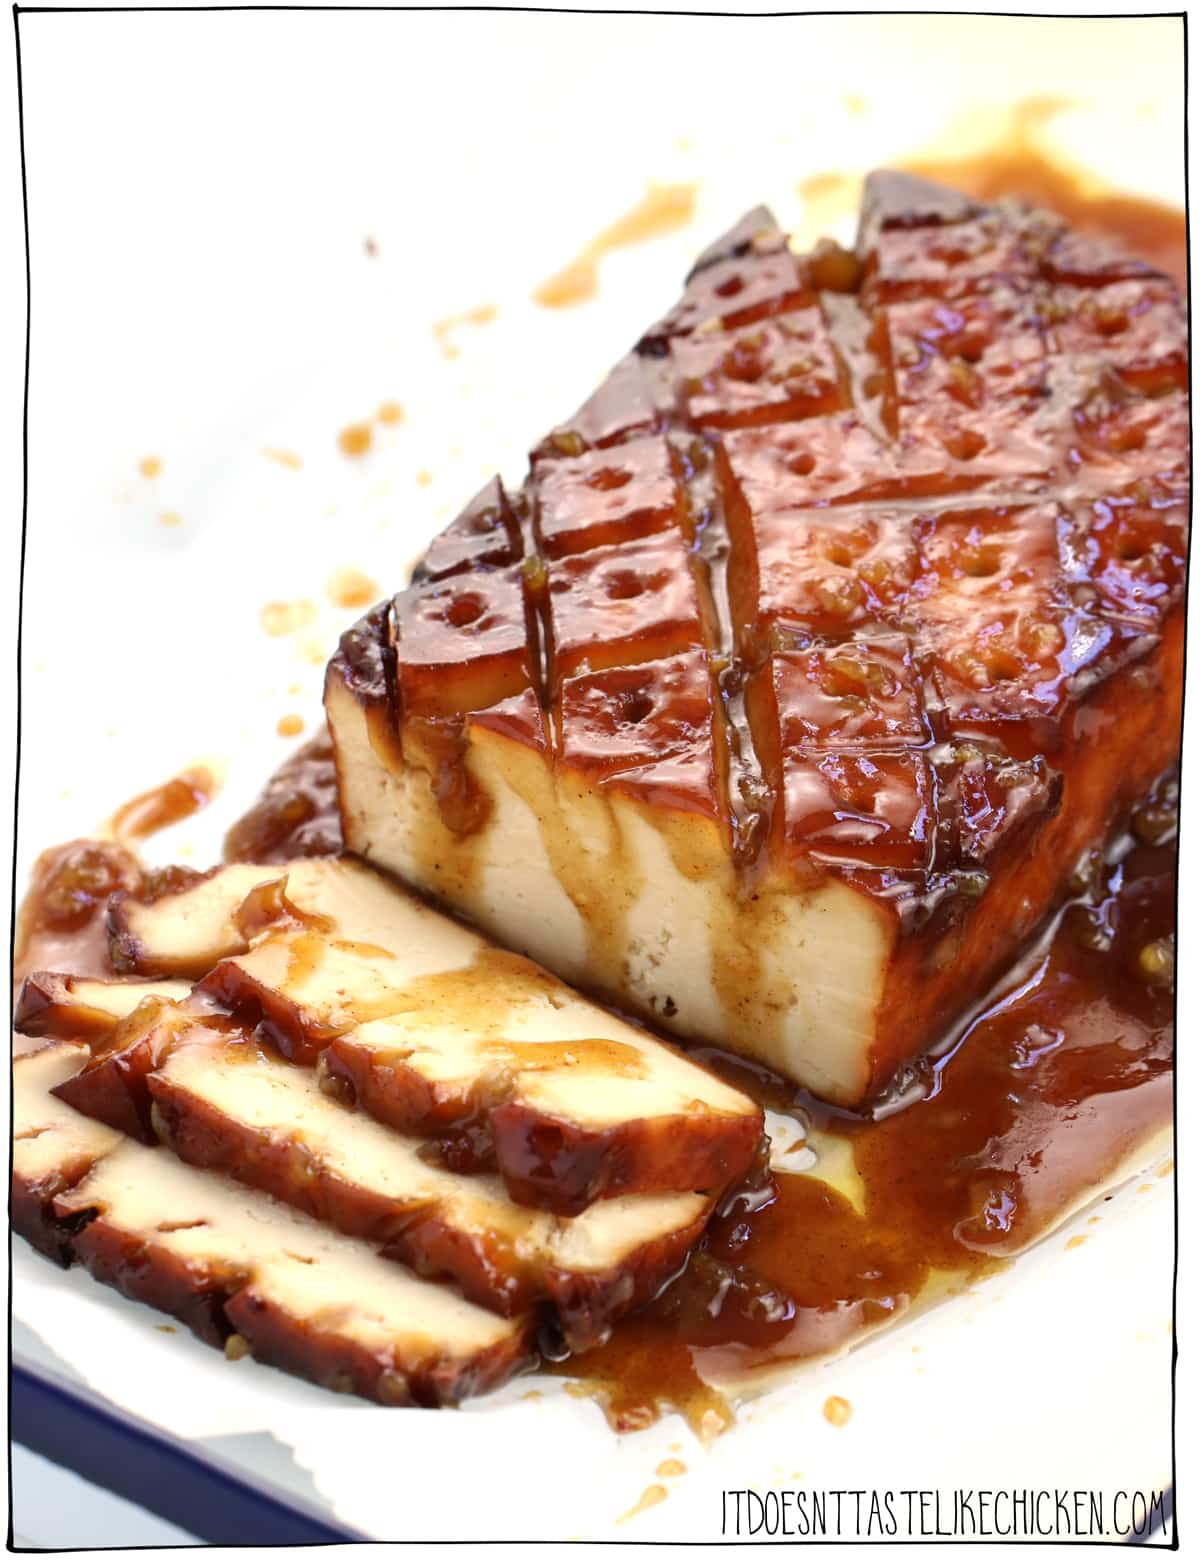 Brown Sugar & Mustard Glazed Tofu! Just 10 ingredients and easy to make. Inspired by glazed ham this tofu roast is the perfect centrepiece for Easter dinner or a holiday feast. #itdoesnttastelikechicken #veganrecipes #easterrecipe